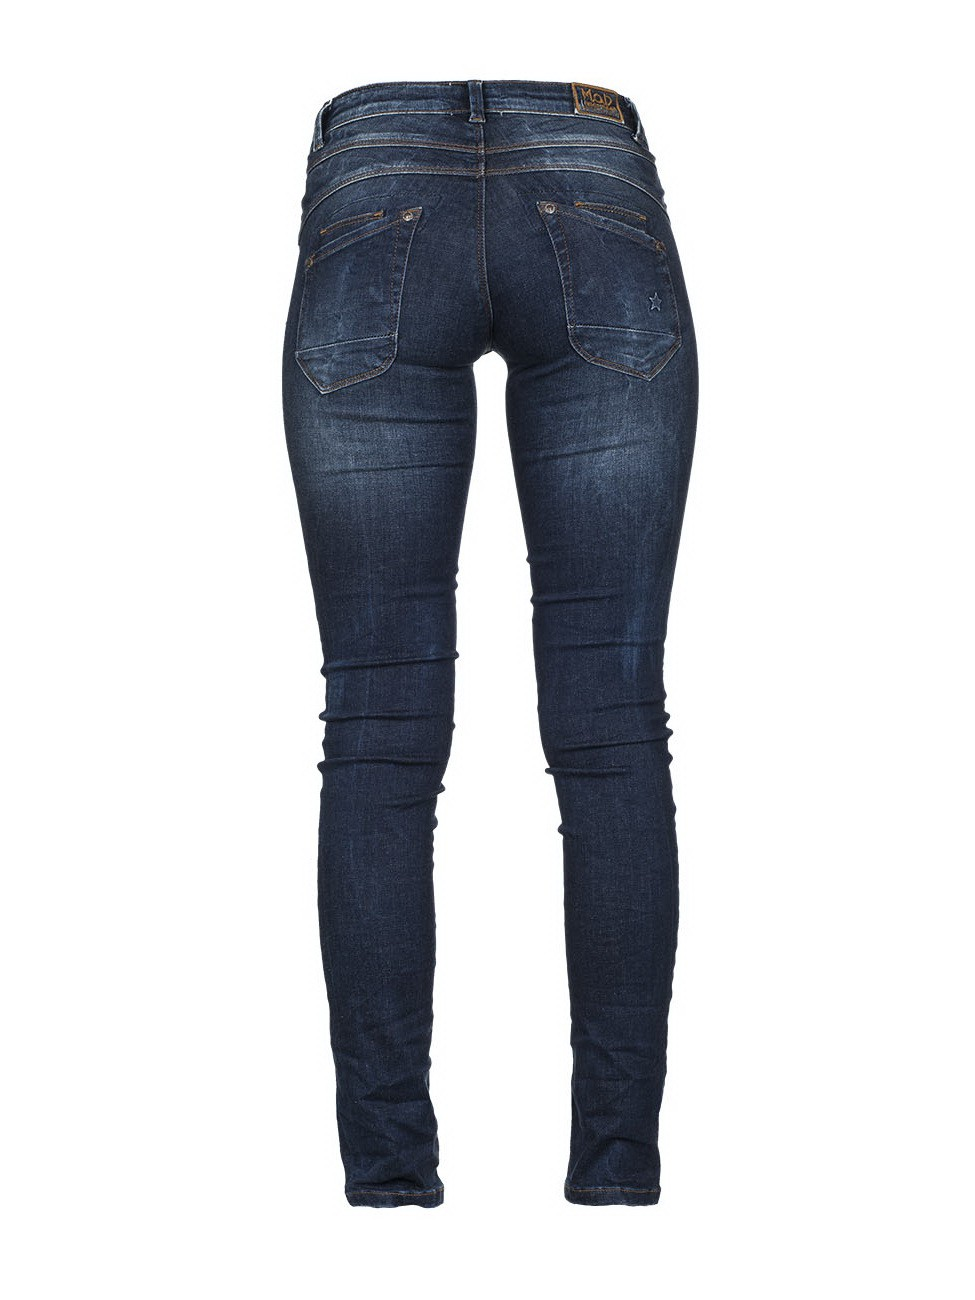 m o d damen jeans ulla slim fit blau strong blue kaufen jeans direct de. Black Bedroom Furniture Sets. Home Design Ideas